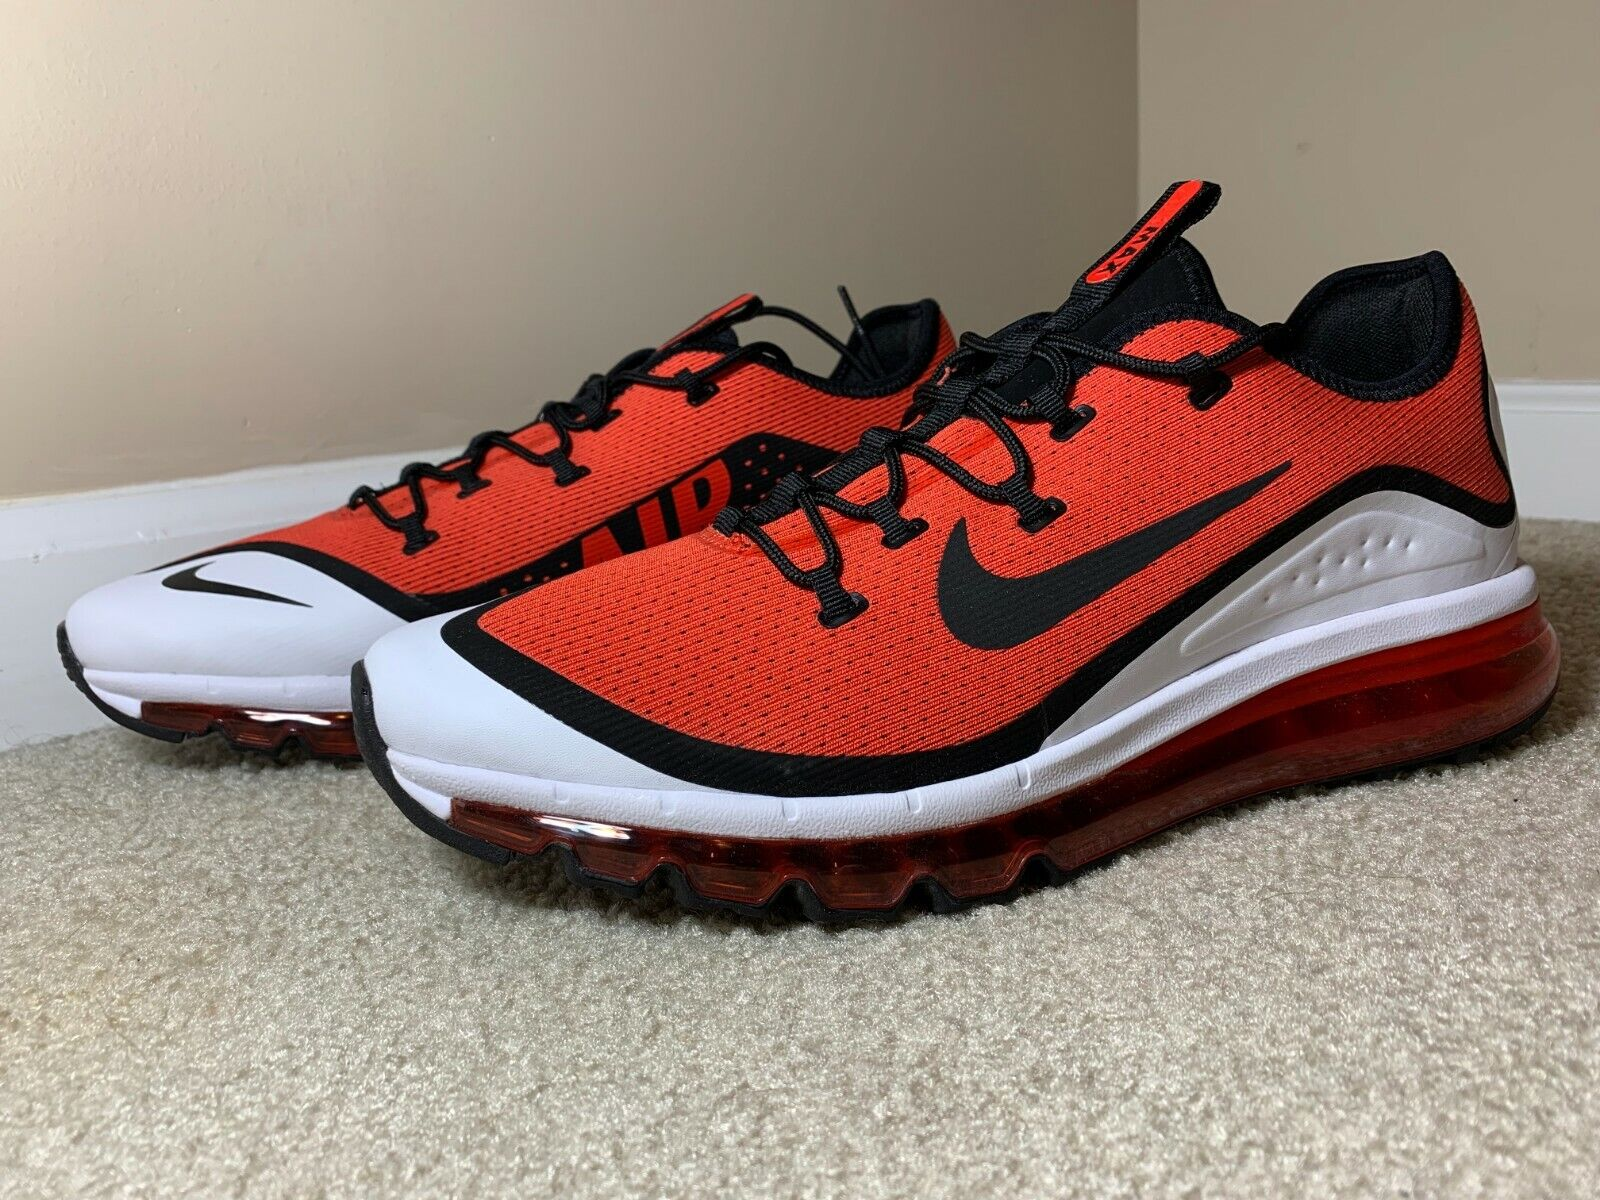 Nike Air Max More Casual Hd3 Men's Habanero Red White Ar1944 600 Size 12 for sale online | eBay